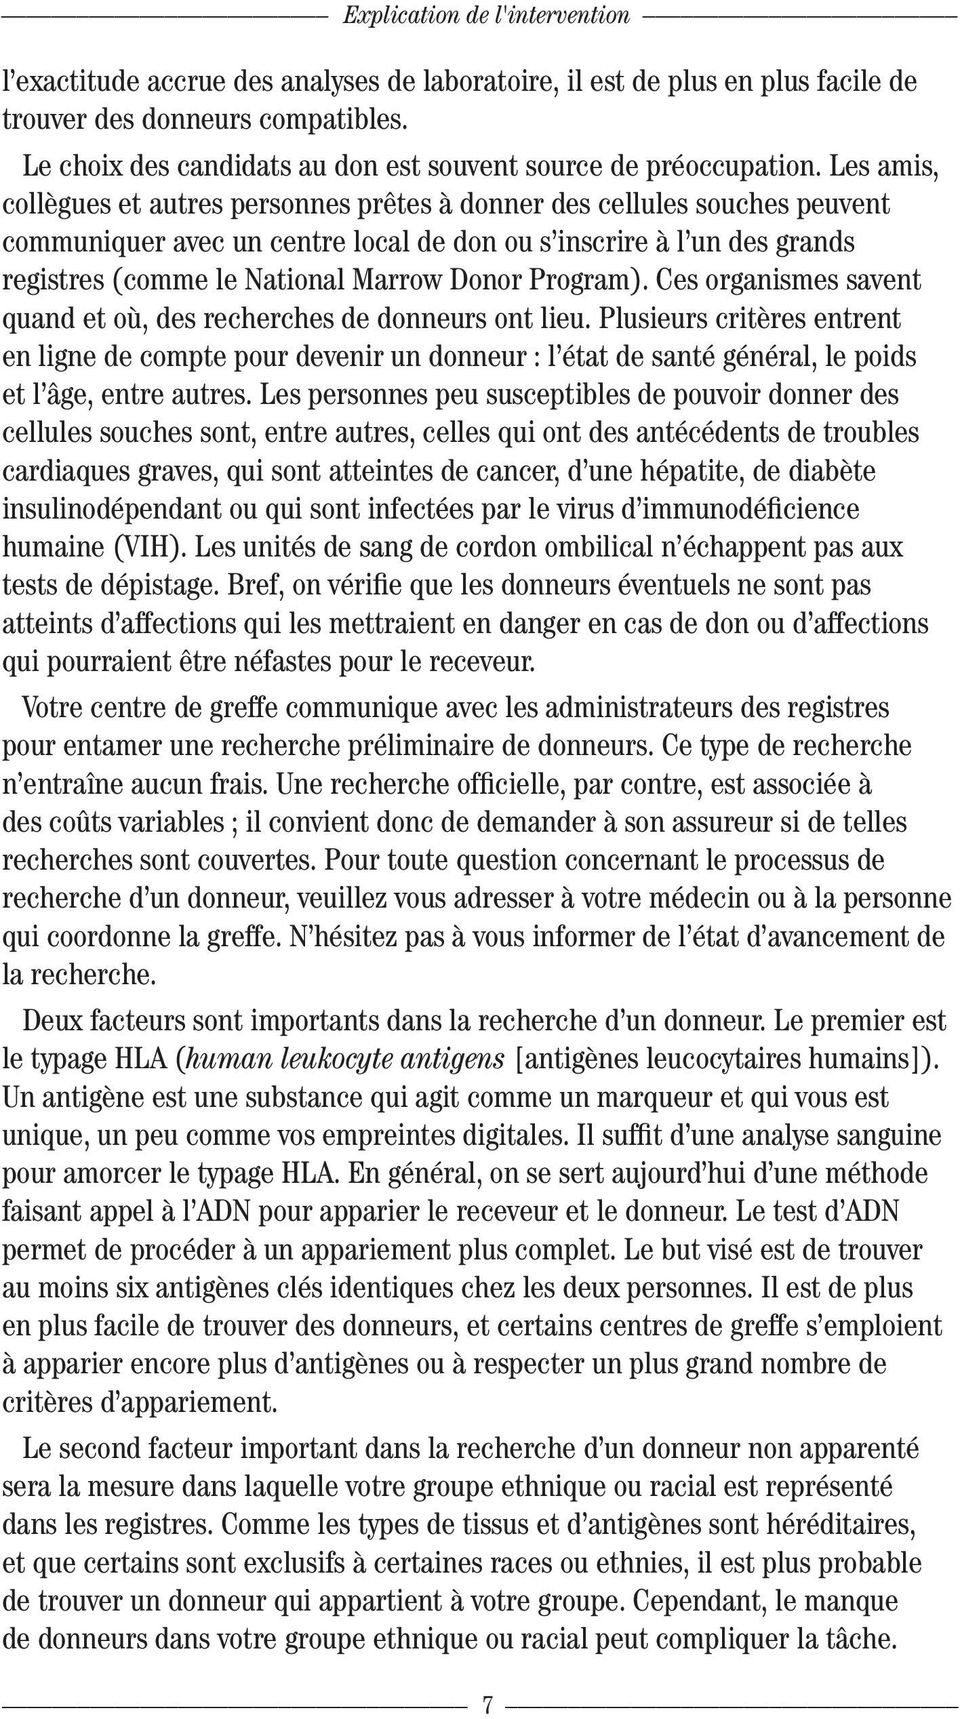 Les amis, collègues et autres personnes prêtes à donner des cellules souches peuvent communiquer avec un centre local de don ou s inscrire à l un des grands registres (comme le National Marrow Donor